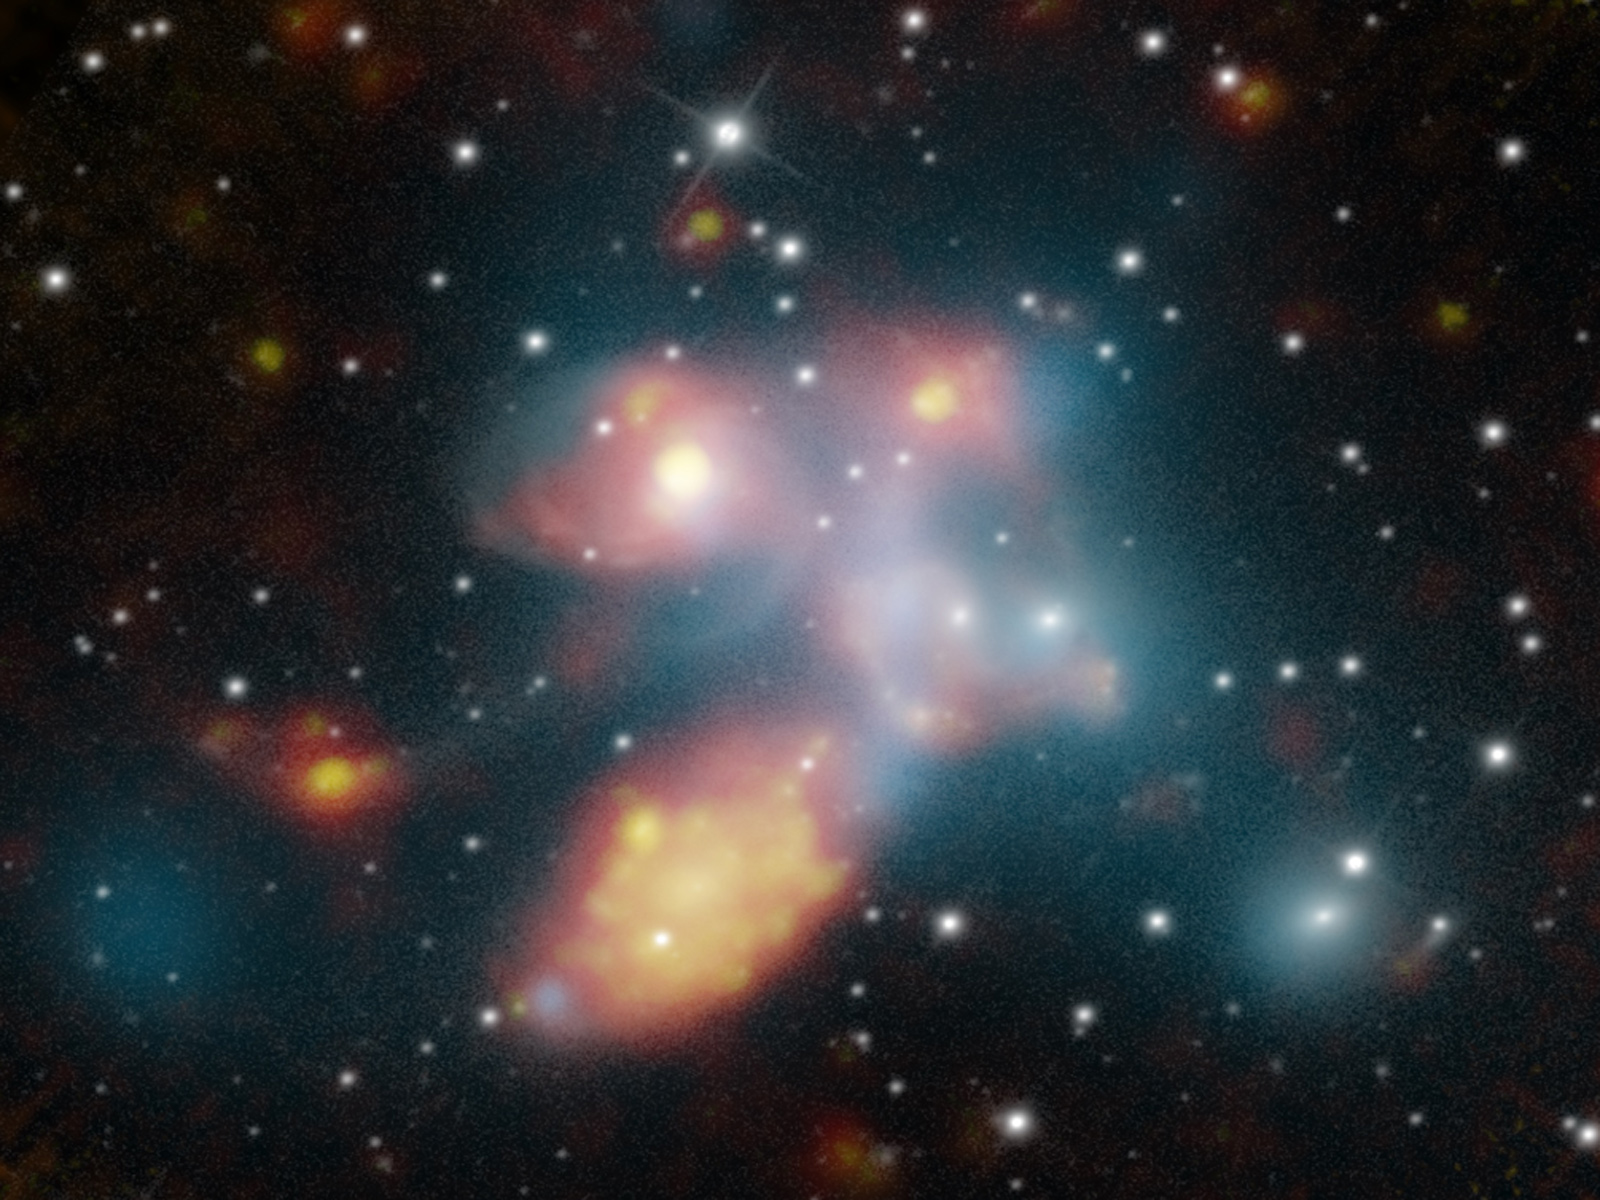 Stephan's Quintent: Galaxies Shimmering and Shining | Space Wallpaper